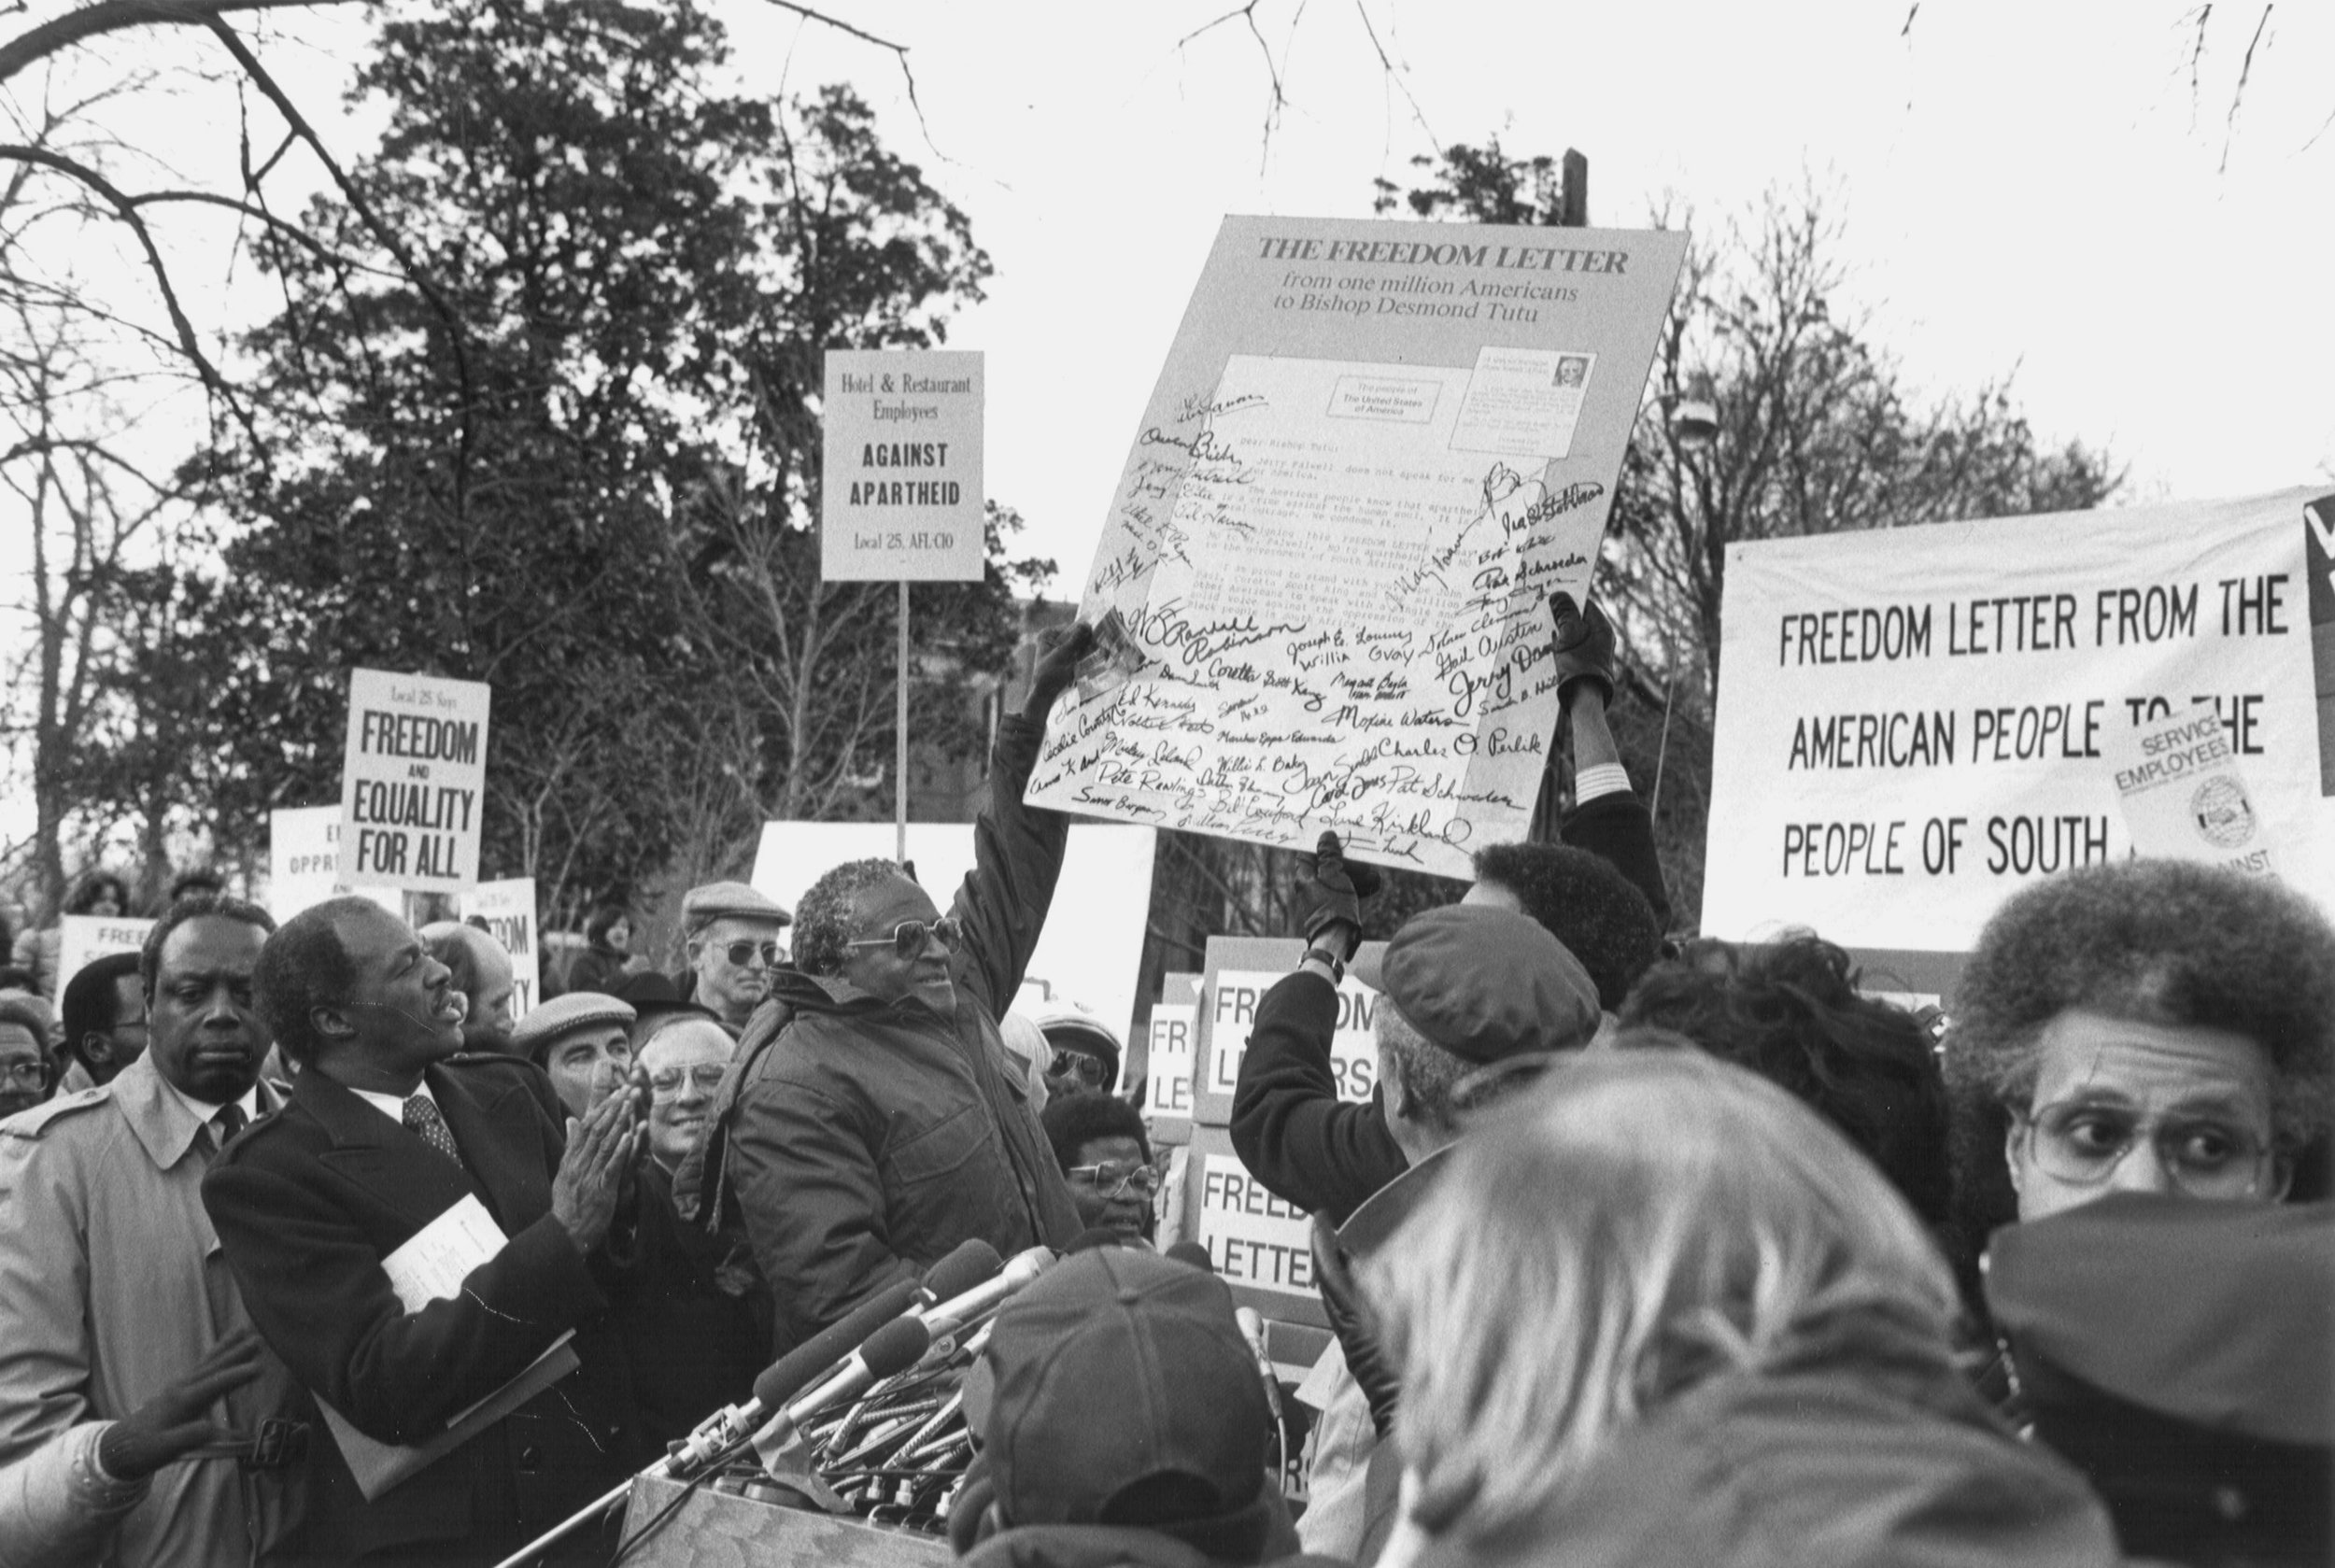 Bishop Desmond Tutu acknowledges receipt of more than 1,000,000 freedom letters on January 8, 1986 outside the South African Embassy in Washington, D.C. Photo (c) Rick Reinhard.